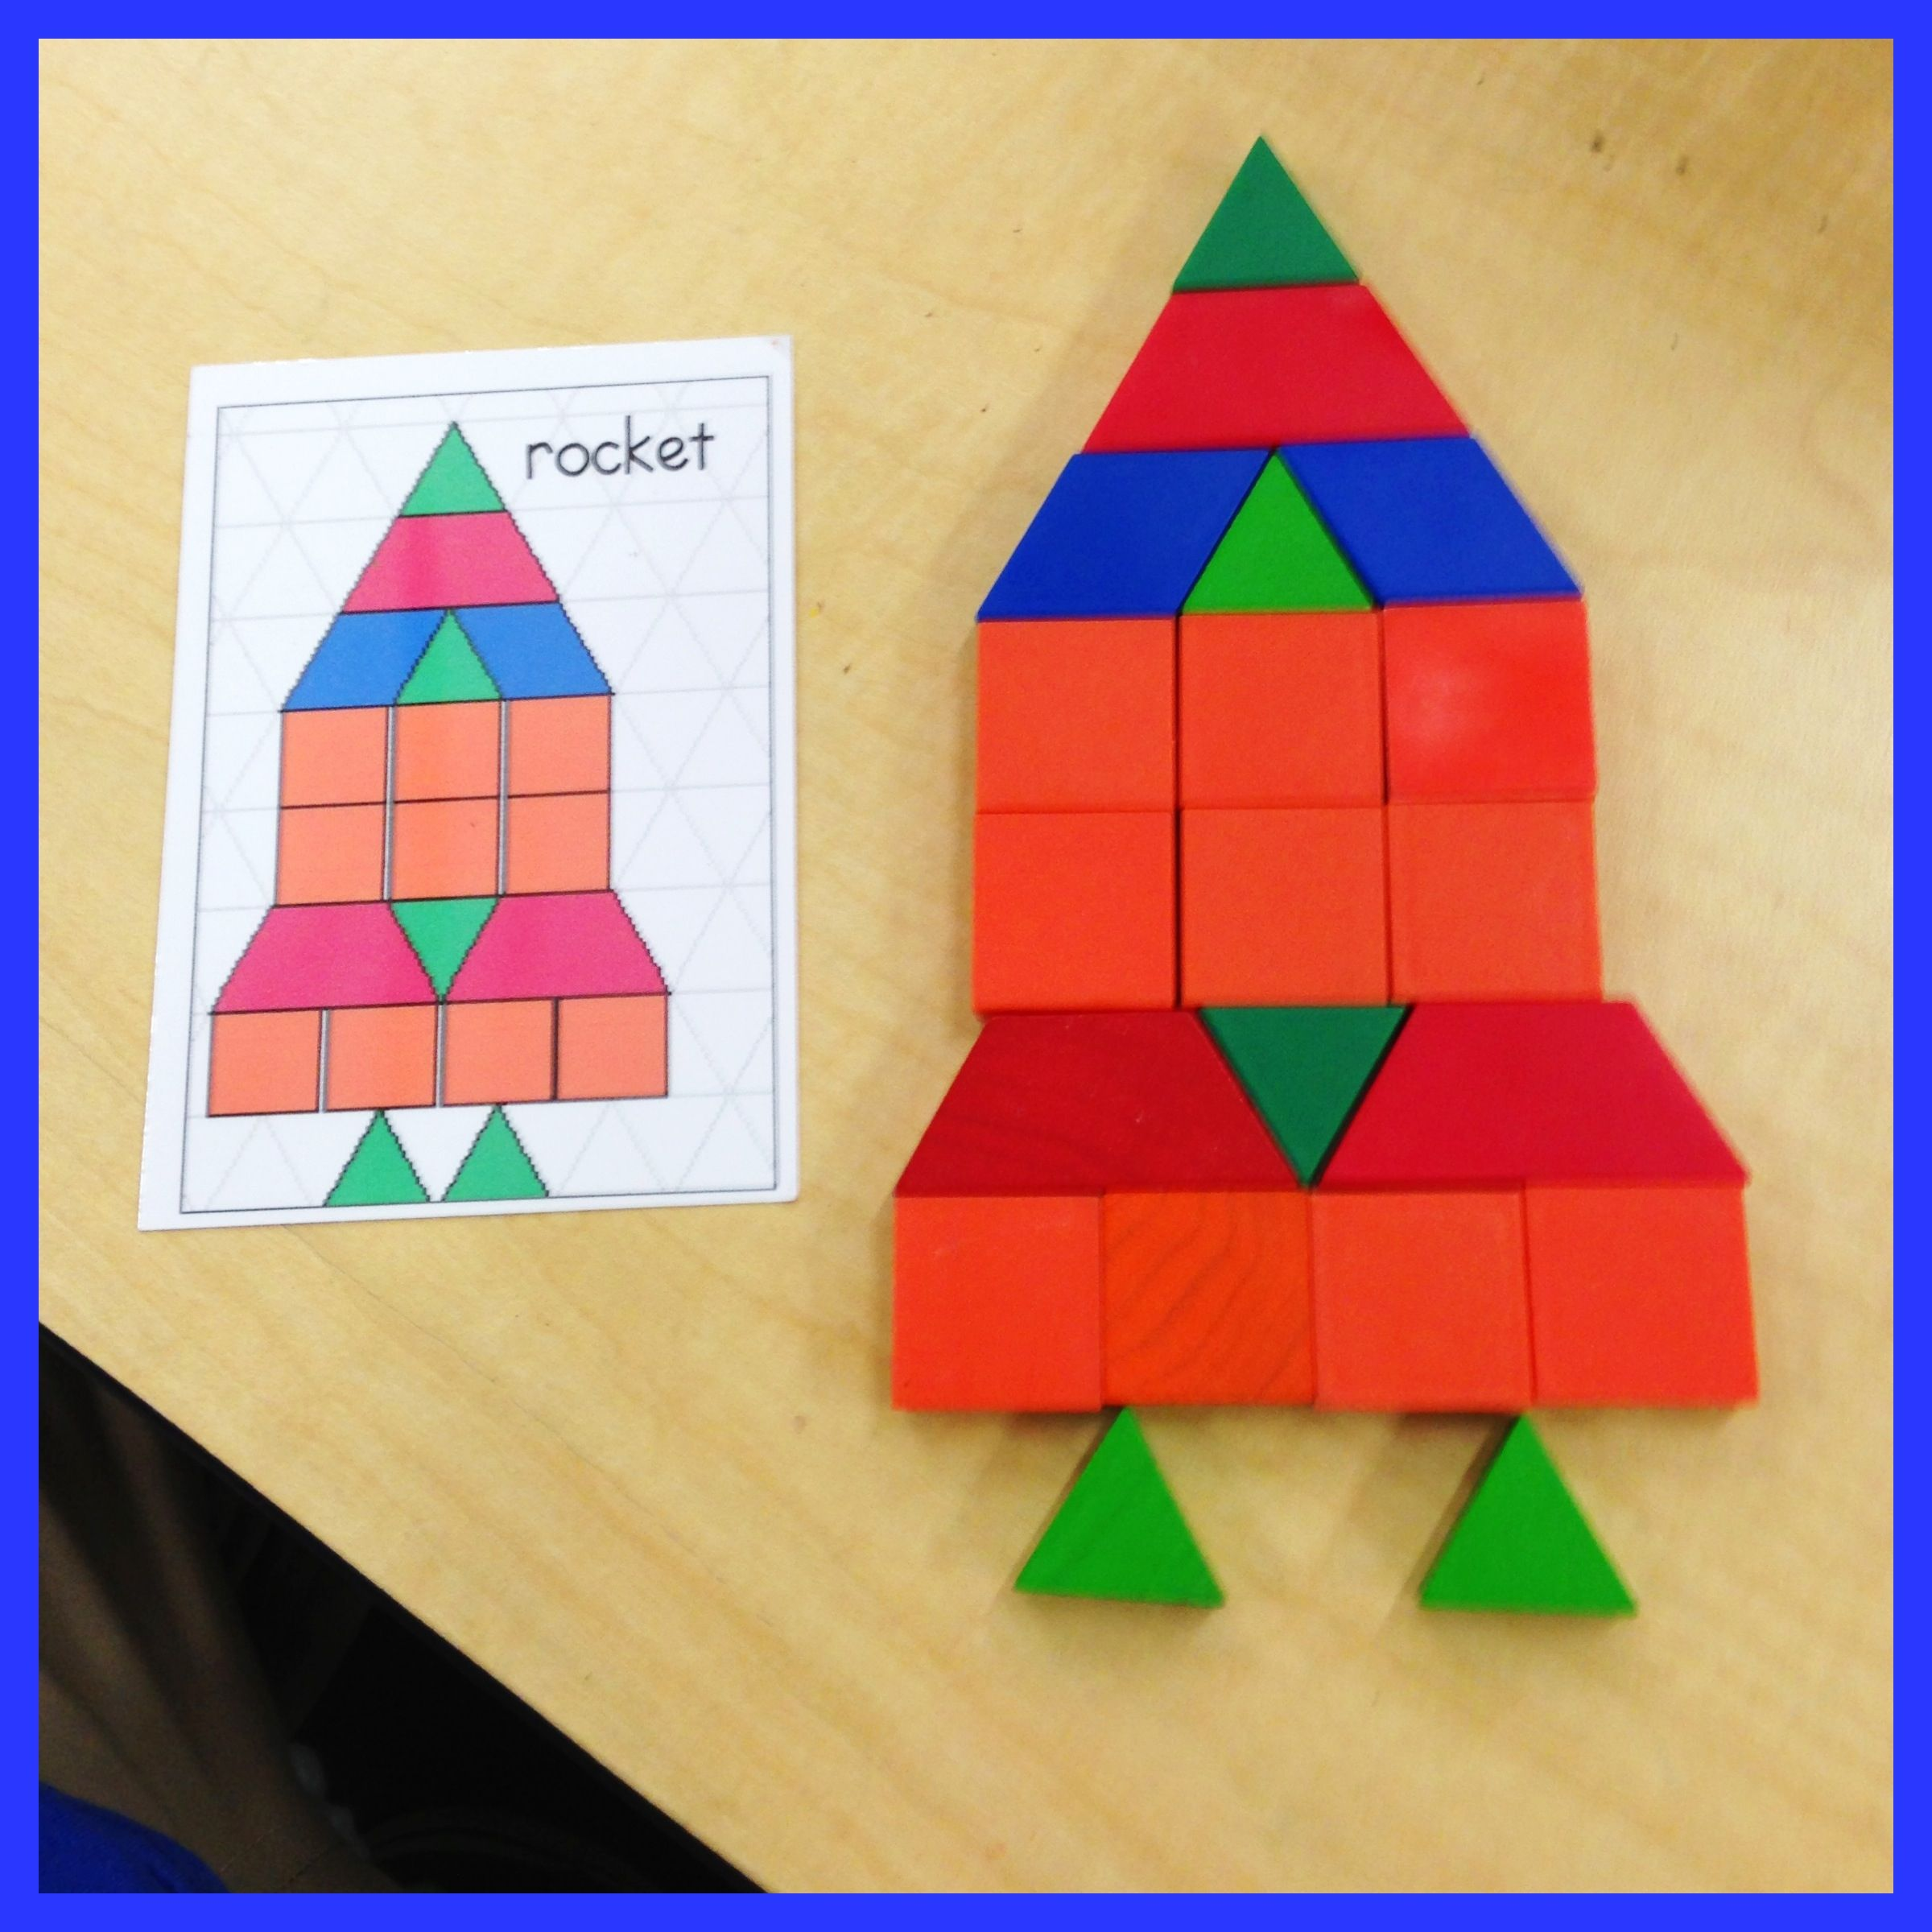 hight resolution of Construct using basic shapes \u0026 spatial reasoning to model objects in the  environment   Spatial concepts